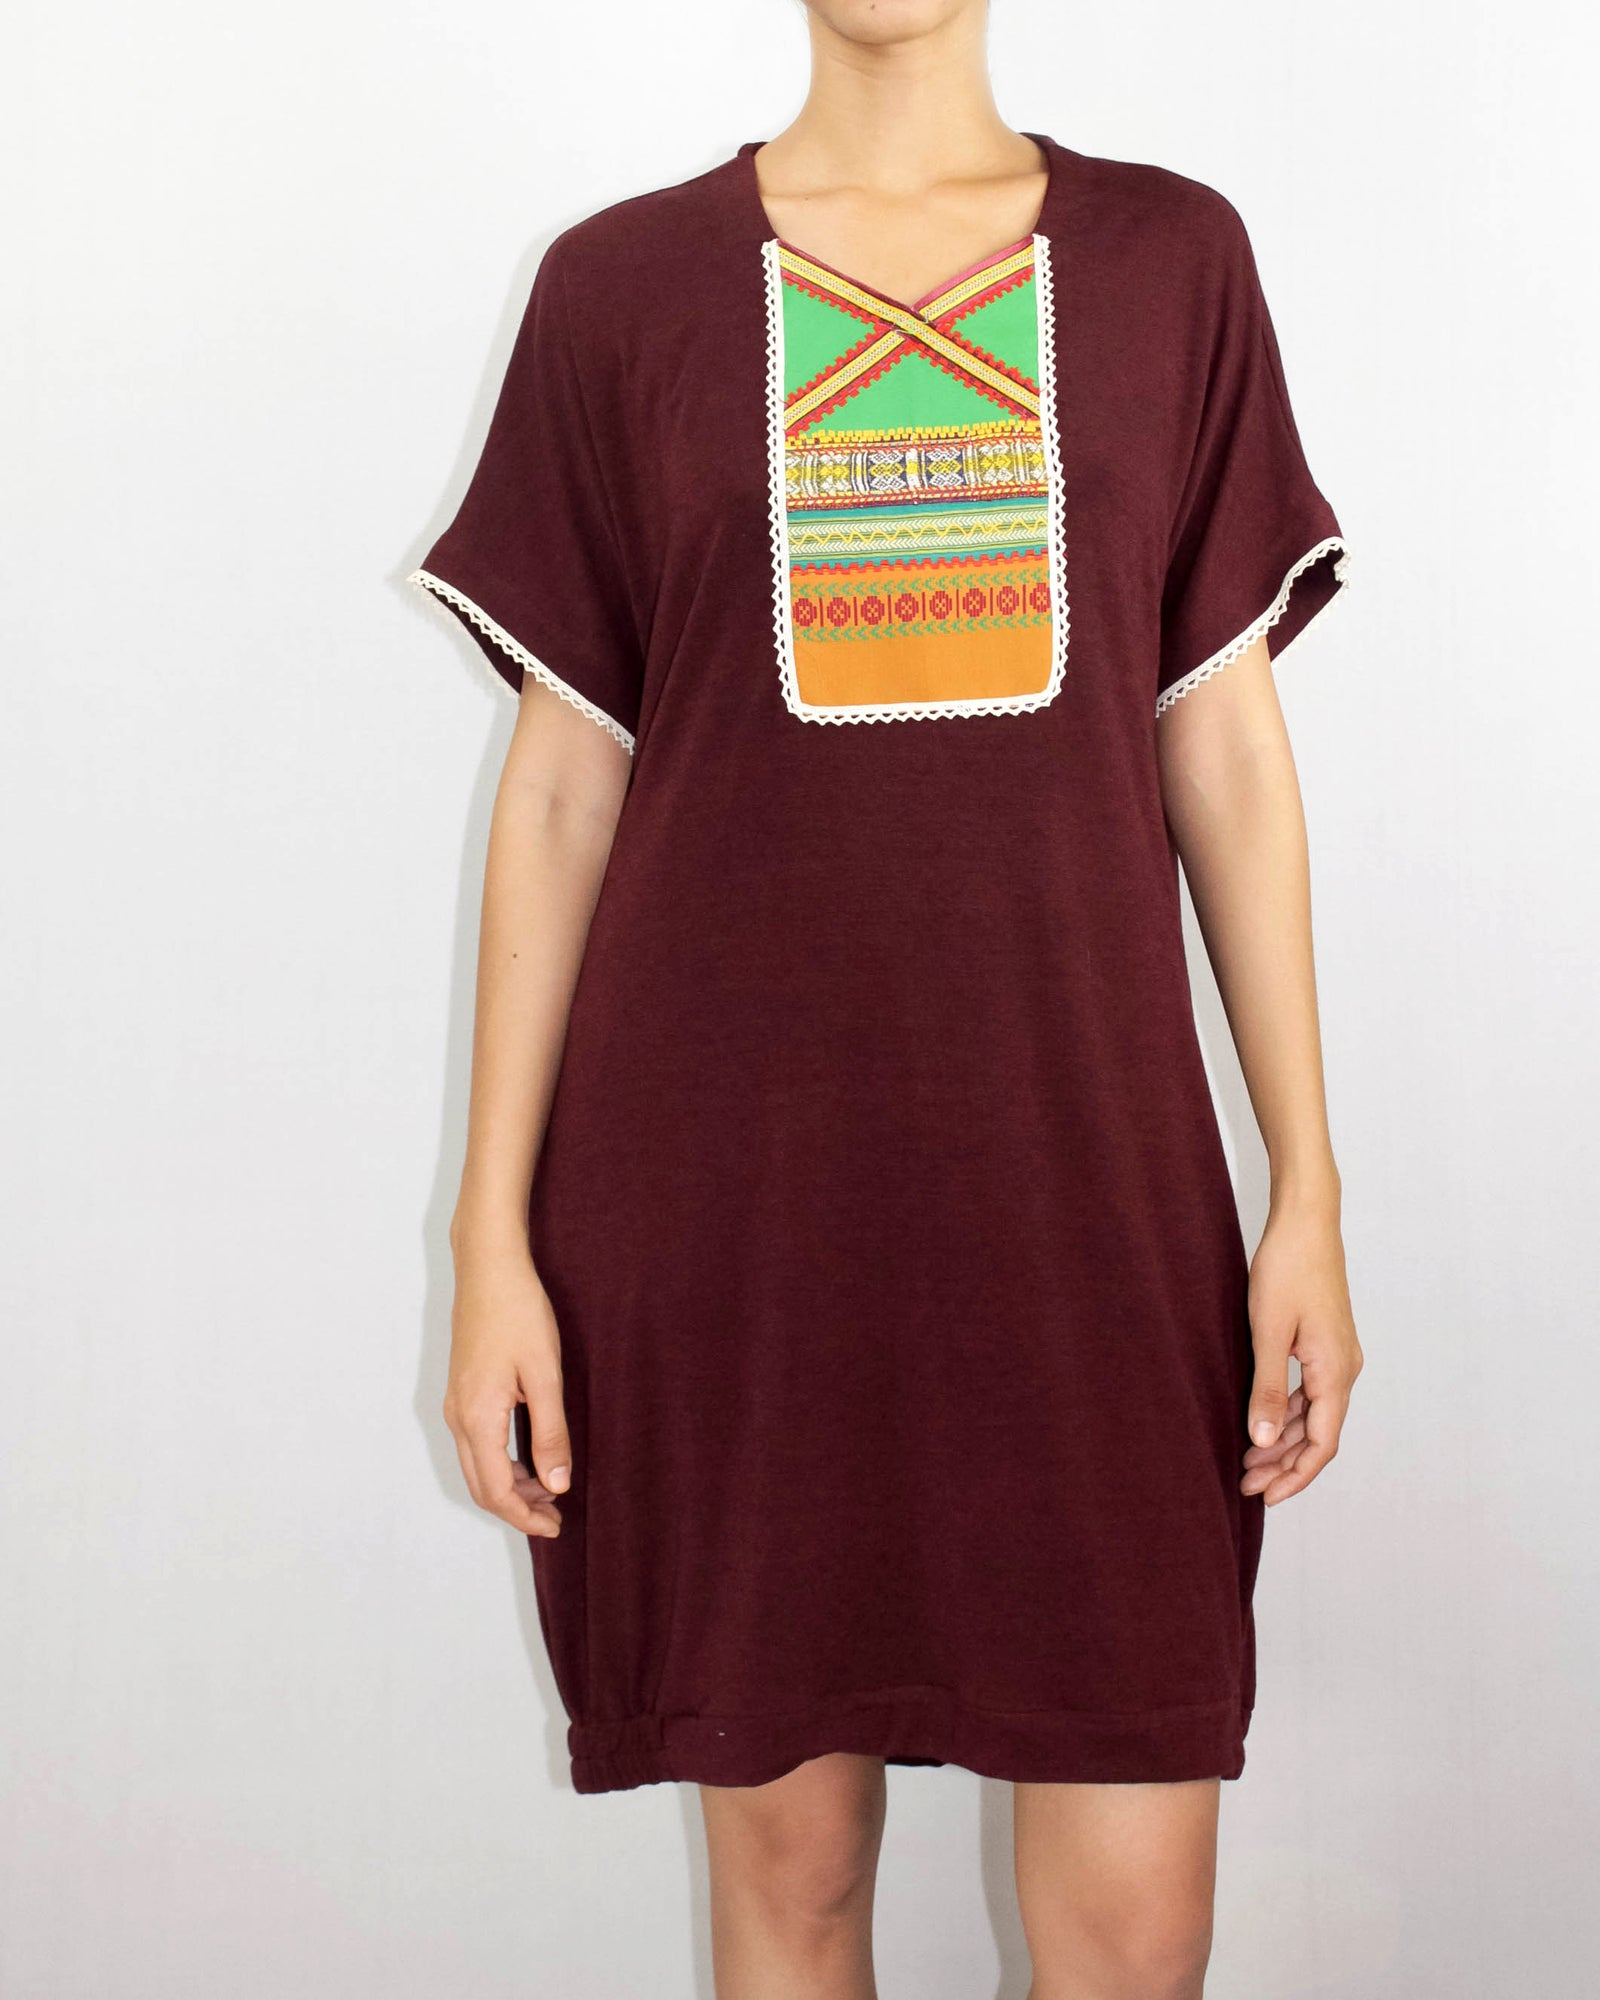 Wine Red T-shirt Dress with Patchwork